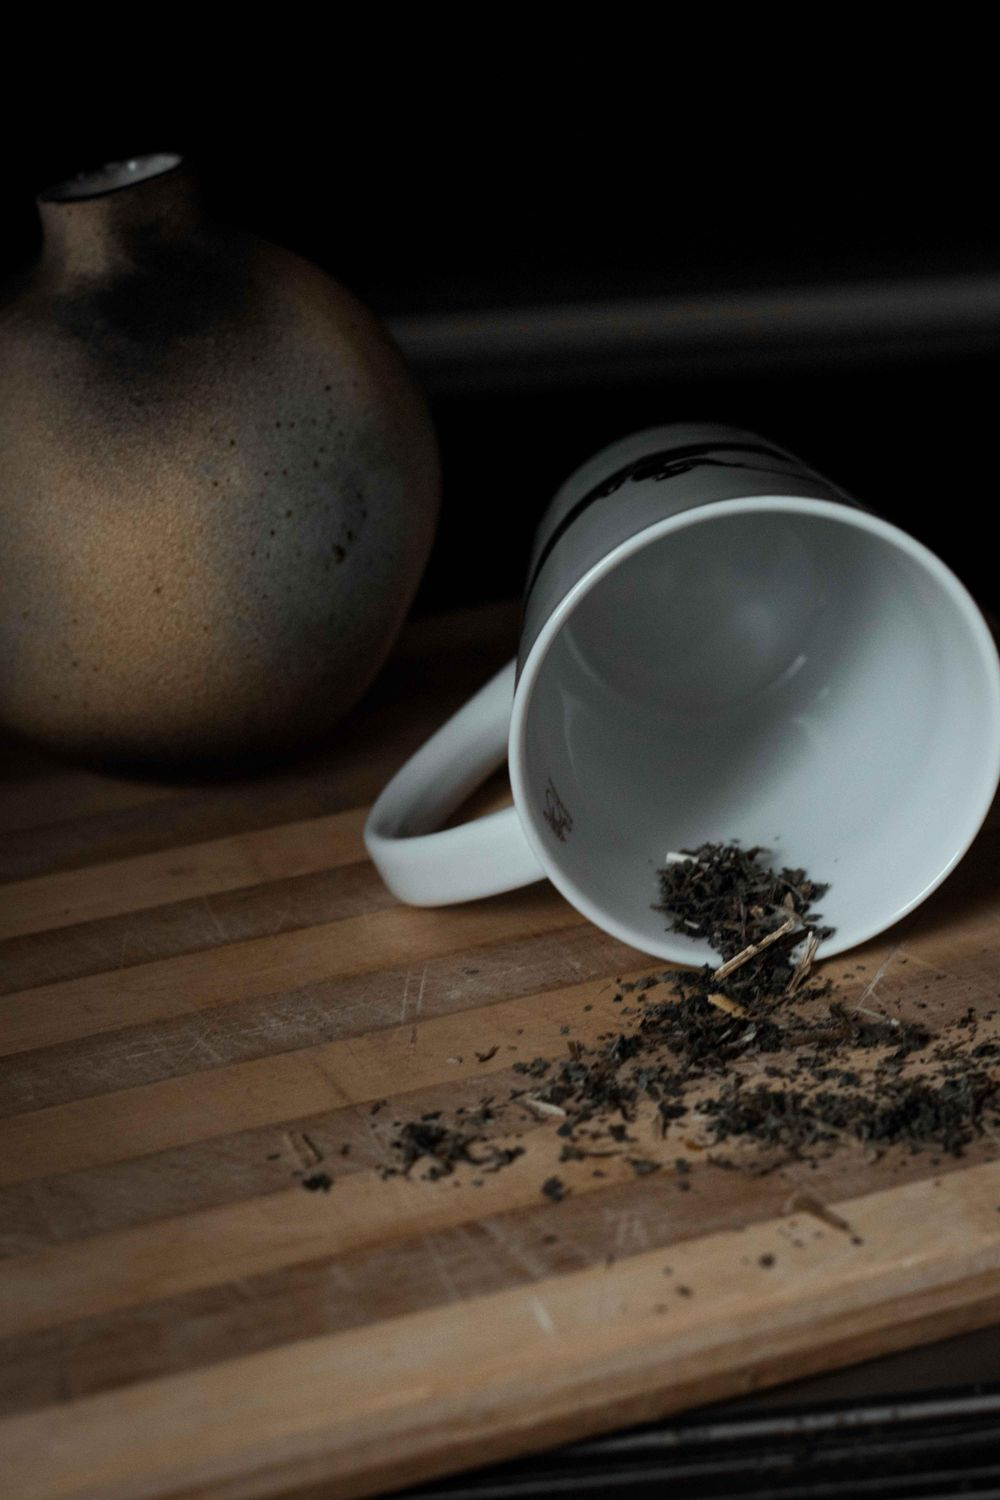 tea and biscuits - image 1 - student project